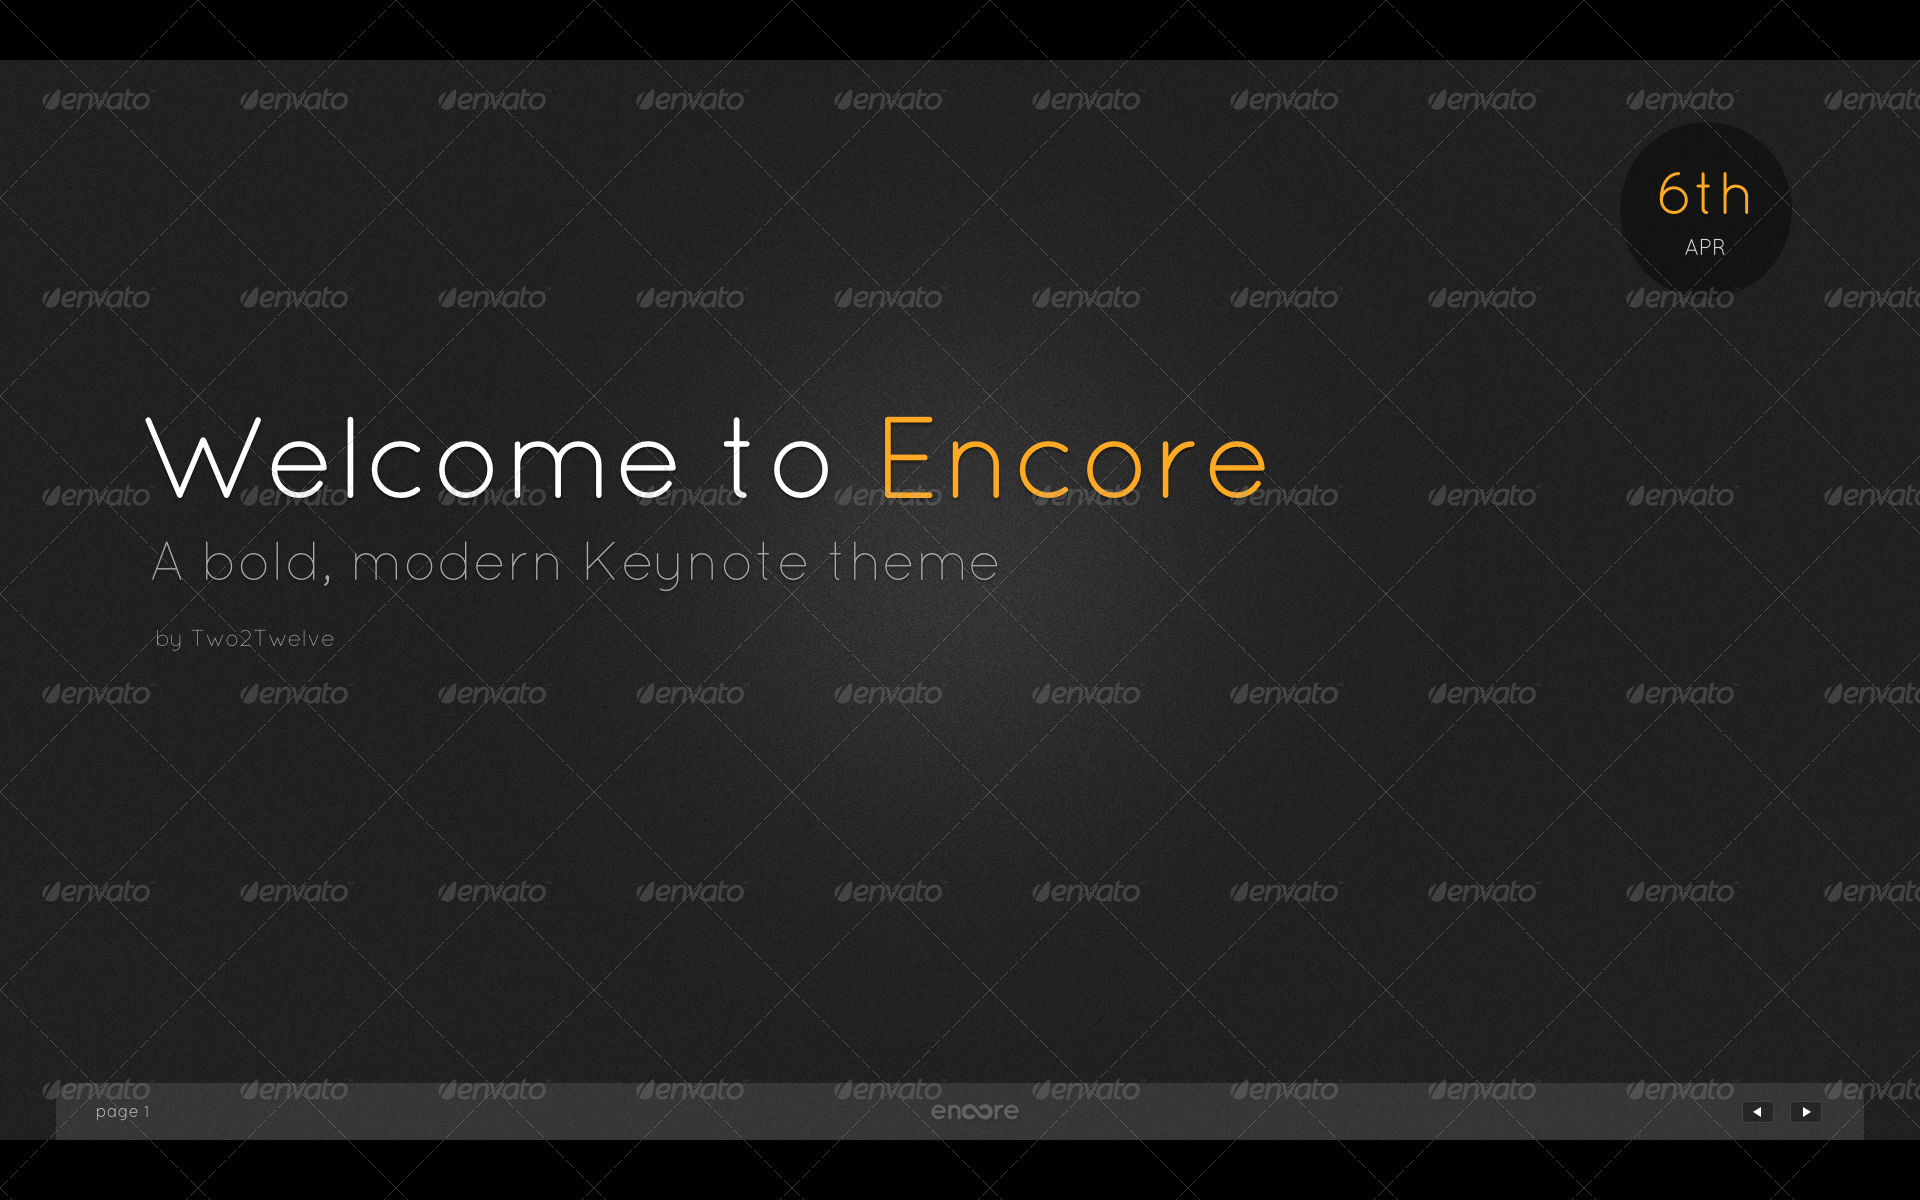 Encore Keynote Presentation Template  - Welcome (Dark Noise) - Bold title page with subtitle, author and date.